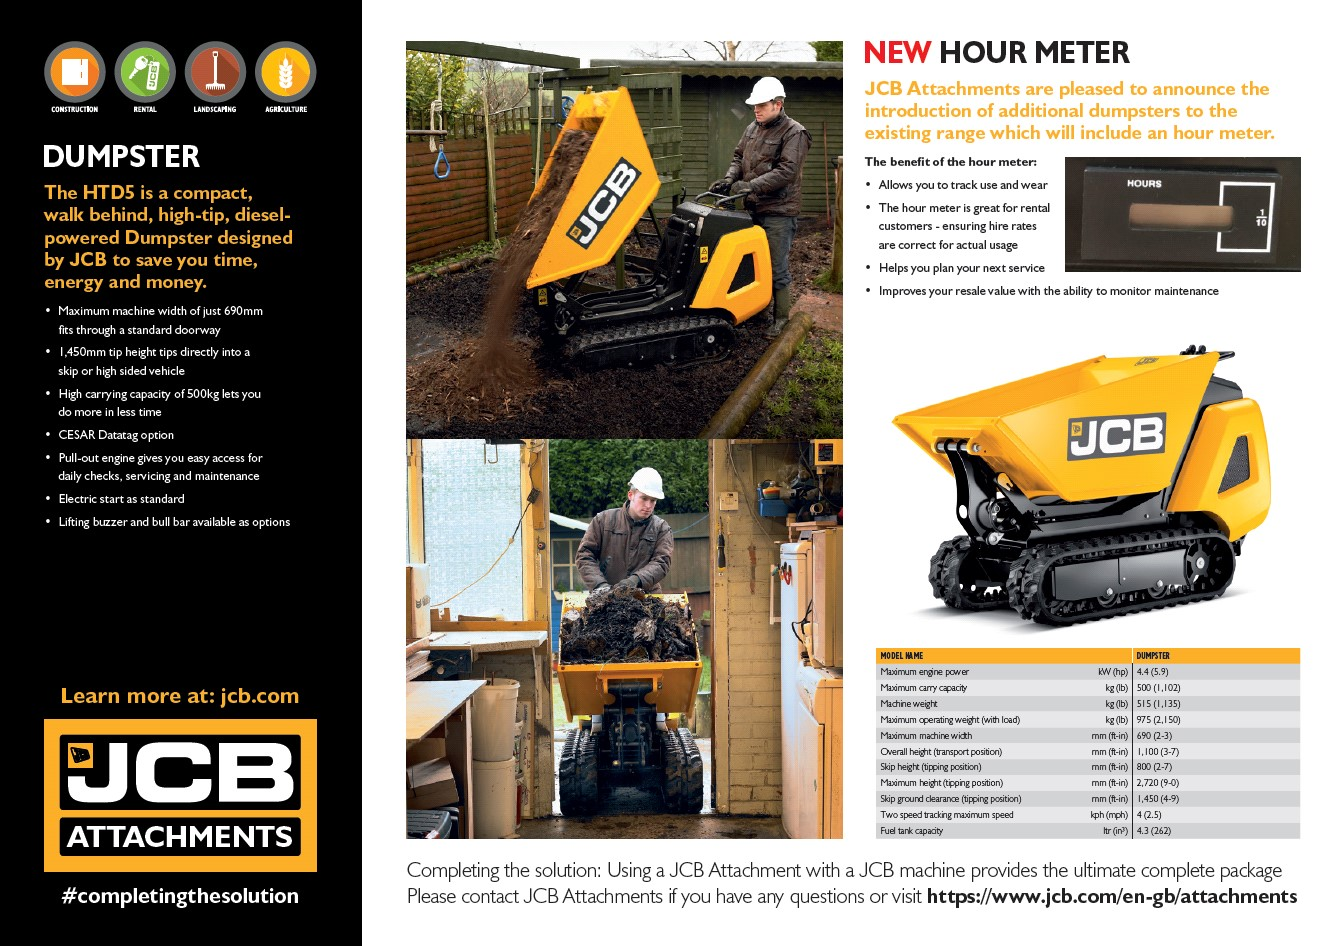 Cover Image of JCB Attachments HTD5 Dumpster Web Brochure